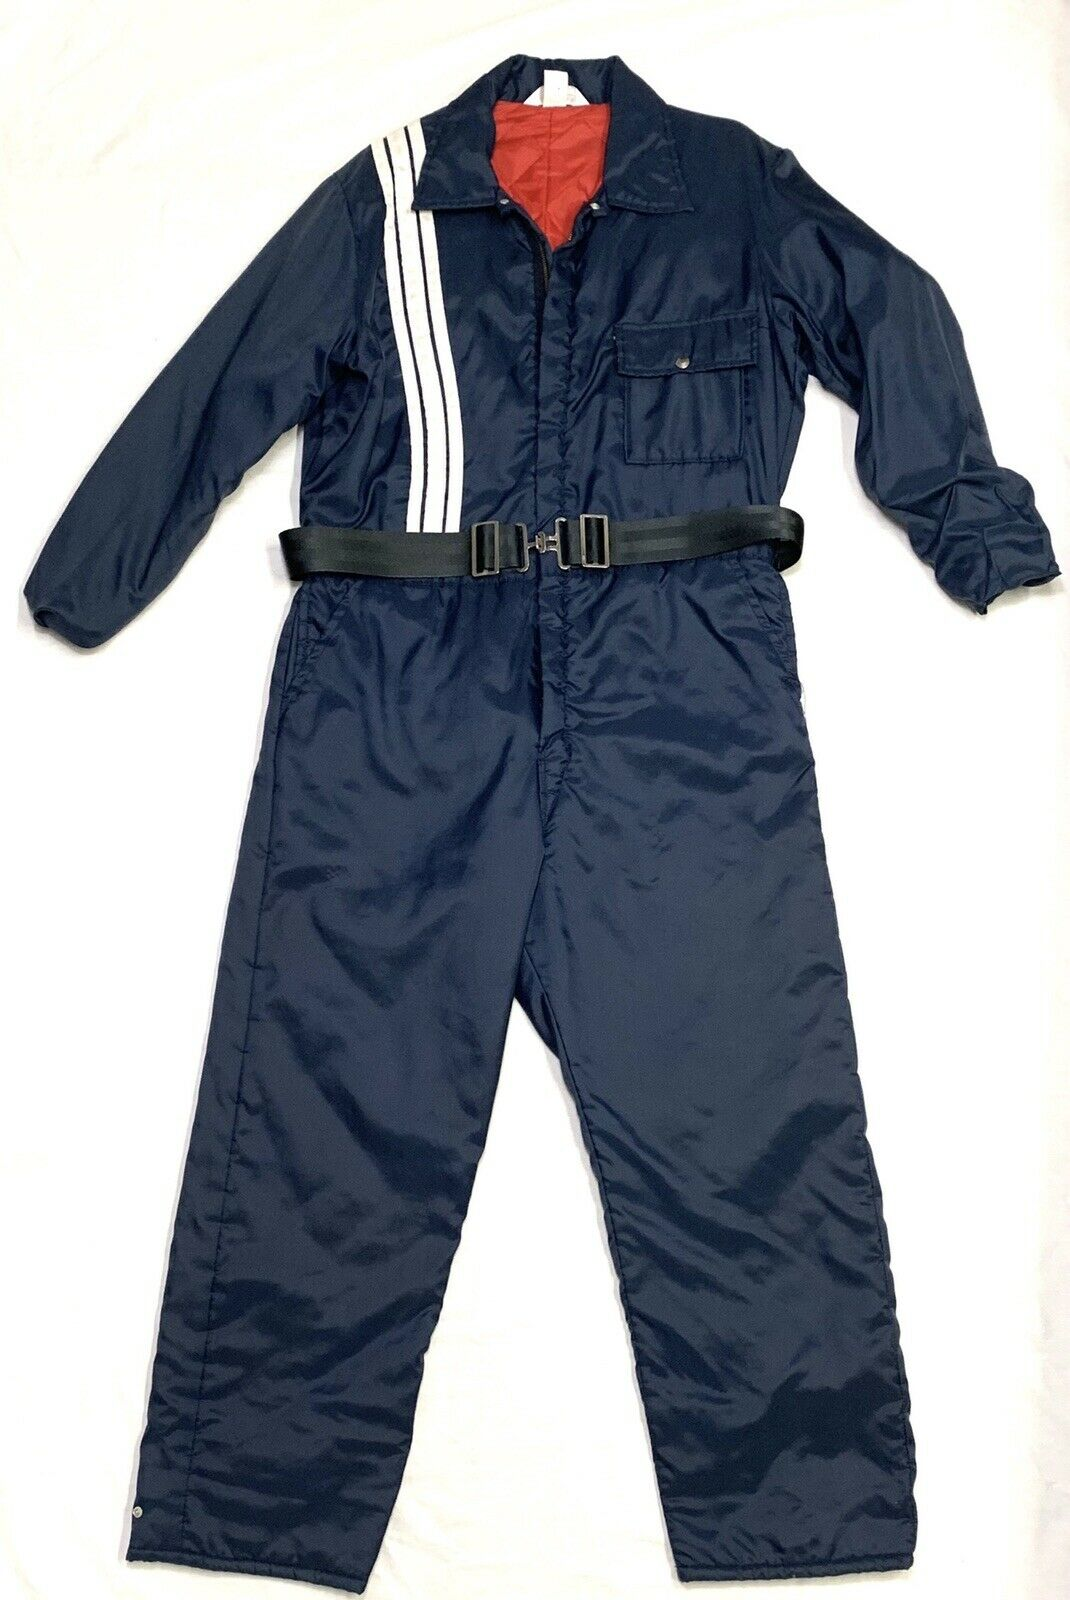 Vtg NWOT KEY IMPERIAL INSULATED NAVY blueE WHITE  STRIPES SNOW SKI SUIT ADULT Sz L  80% off